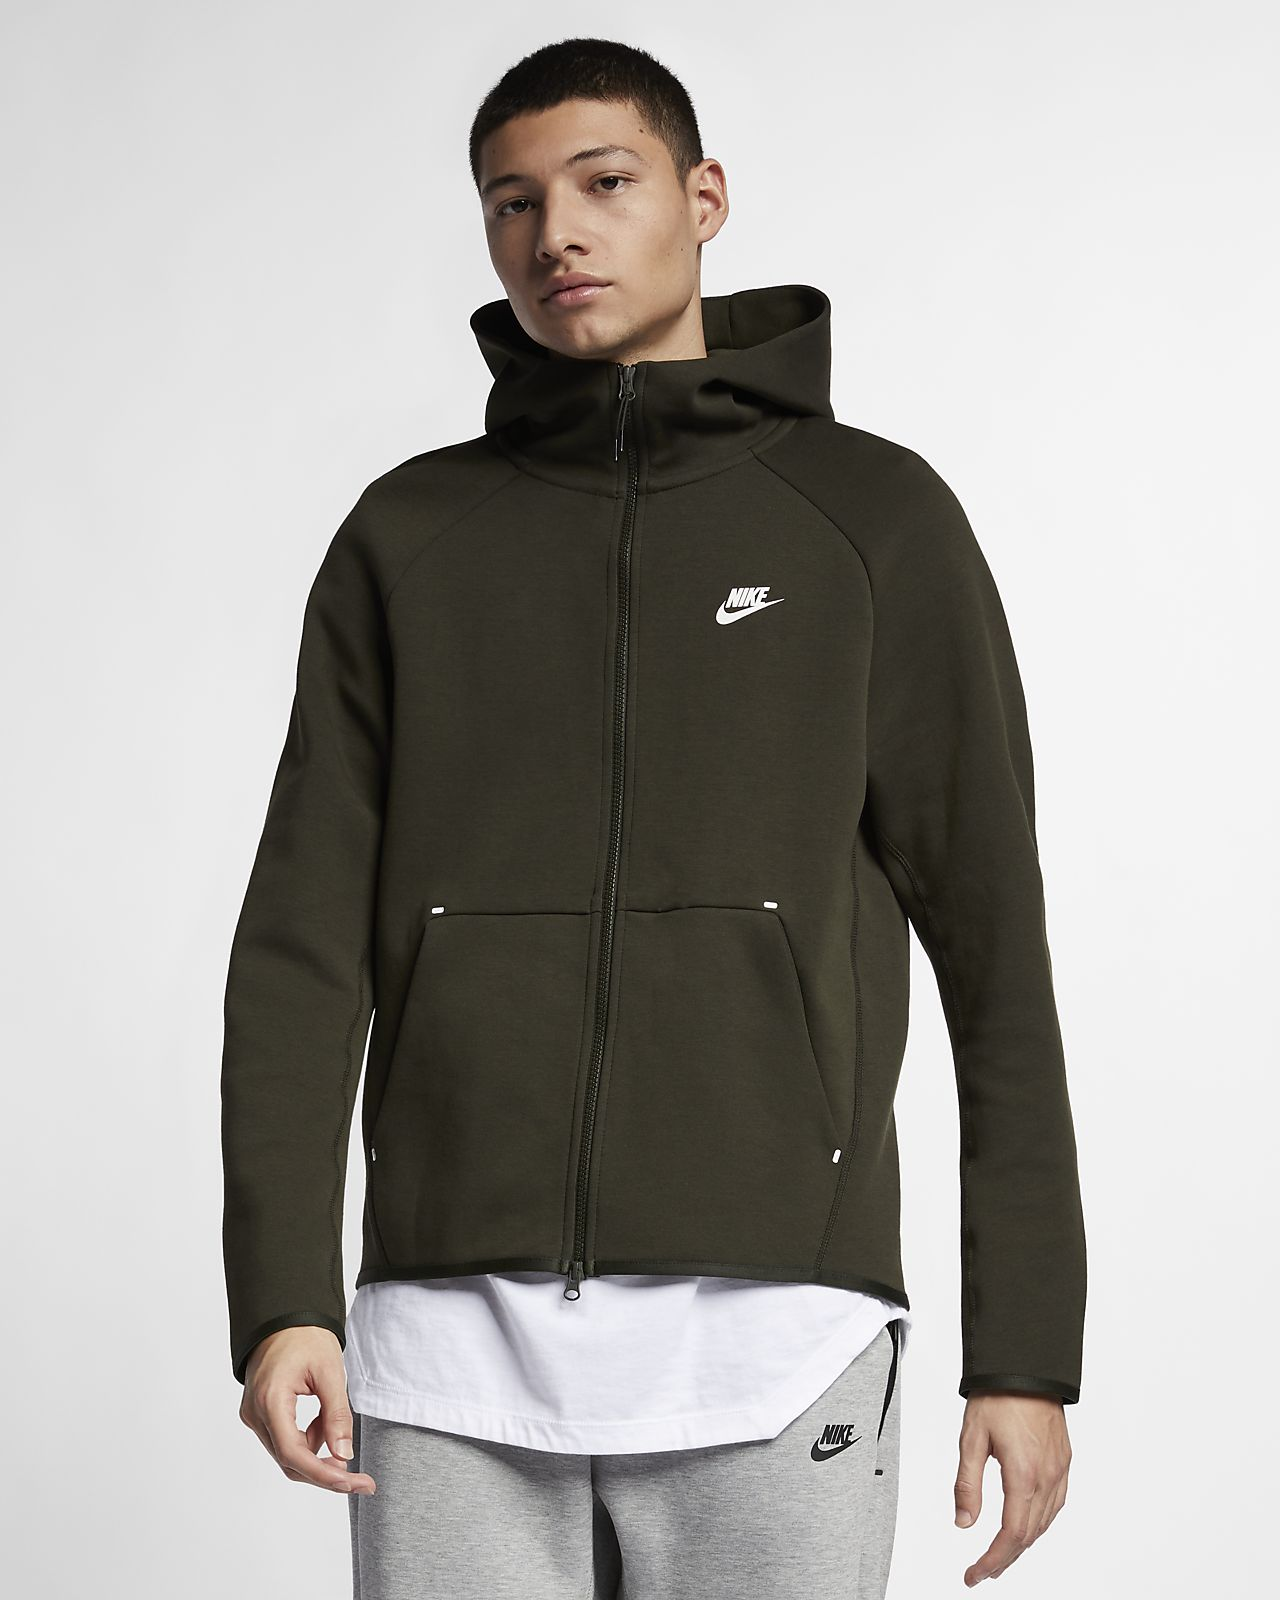 7333de129e77 Nike Sportswear Tech Fleece Men s Full-Zip Hoodie. Nike.com